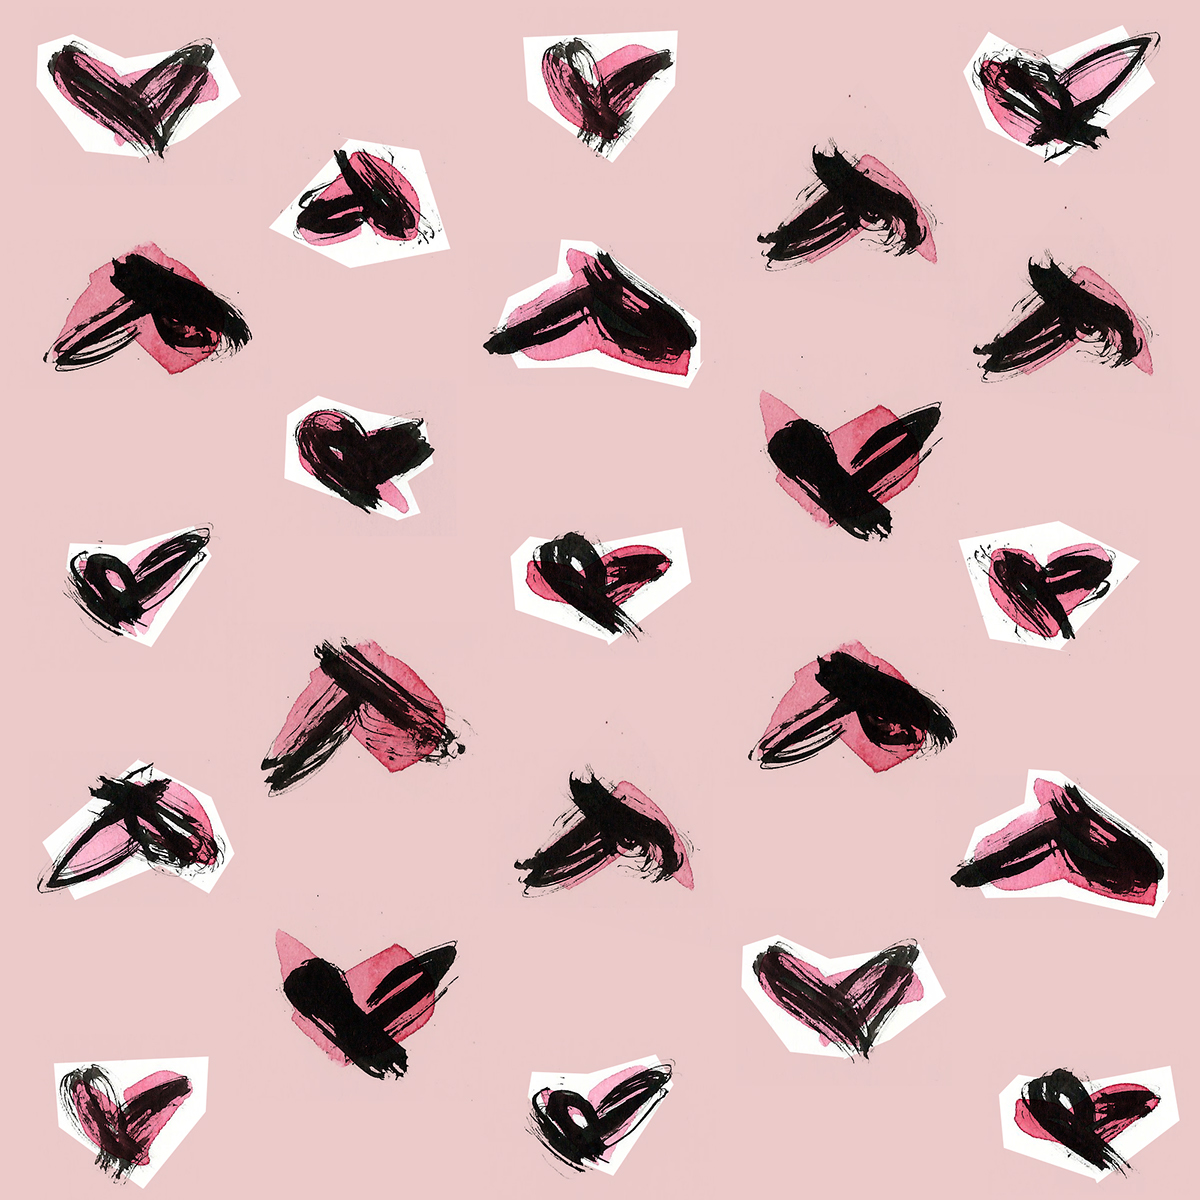 Fashion  ILLUSTRATION  hearts ink pink Packaging surface design Wrapping paper brand pattern Adobe Photoshop